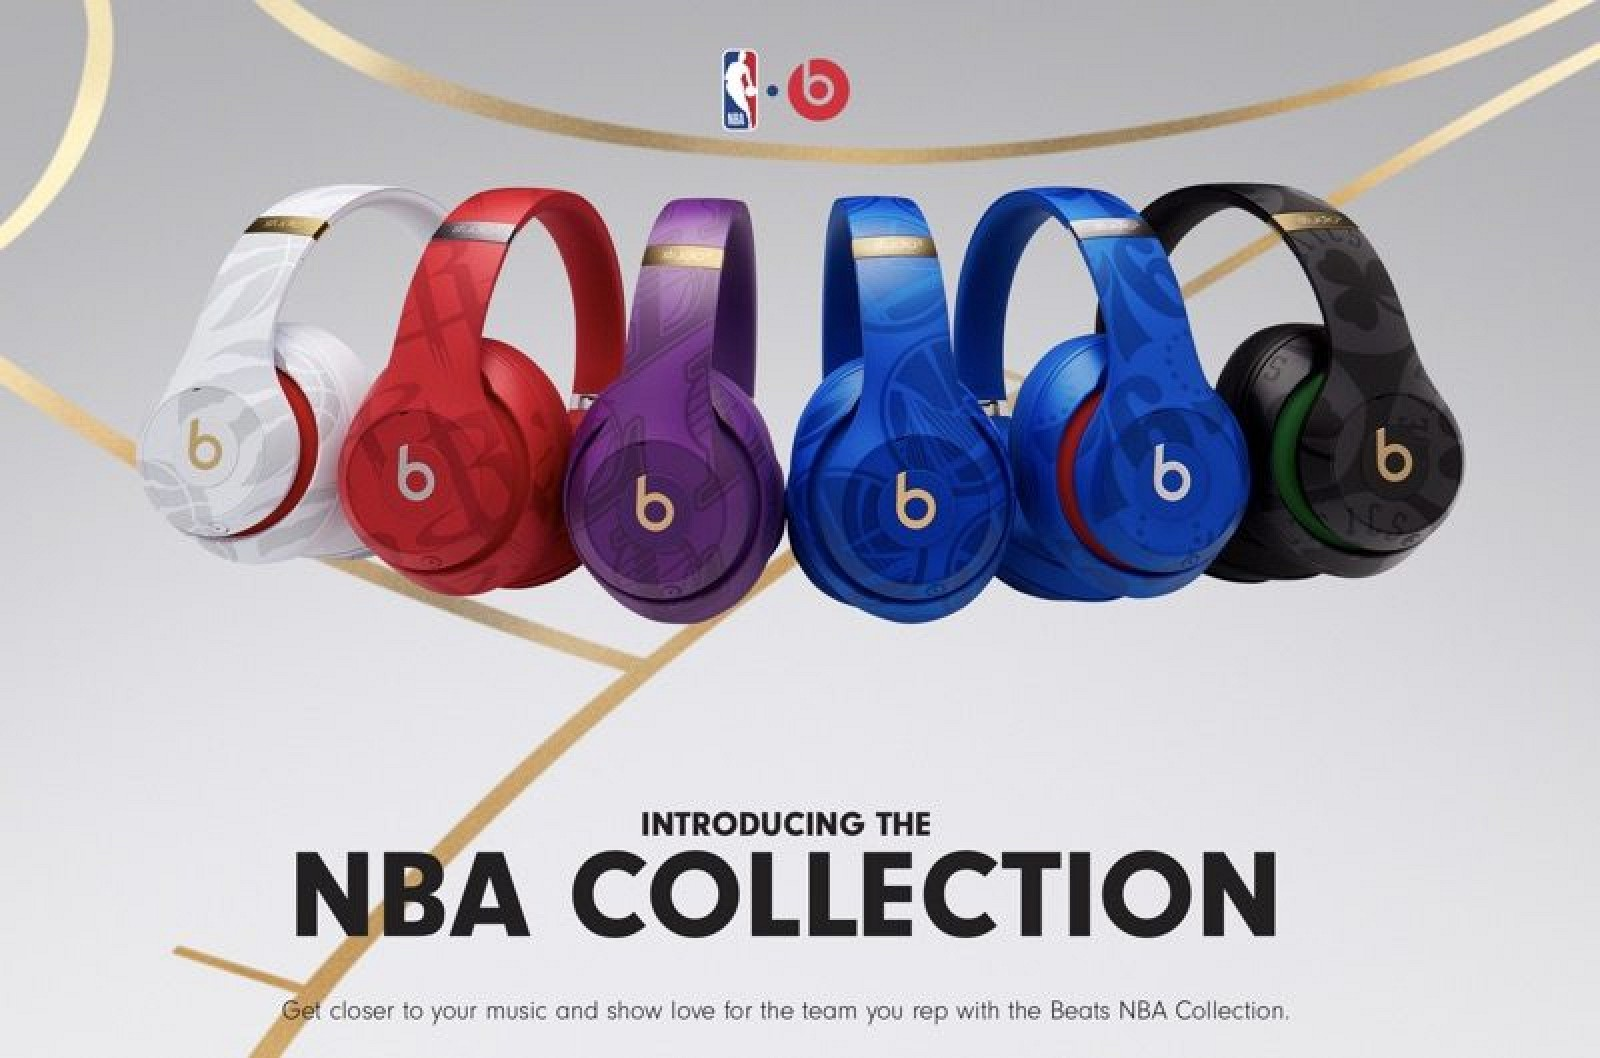 c68b634f371 Apple's Beats by Dre Brand Unveils New NBA Collection - MacRumors